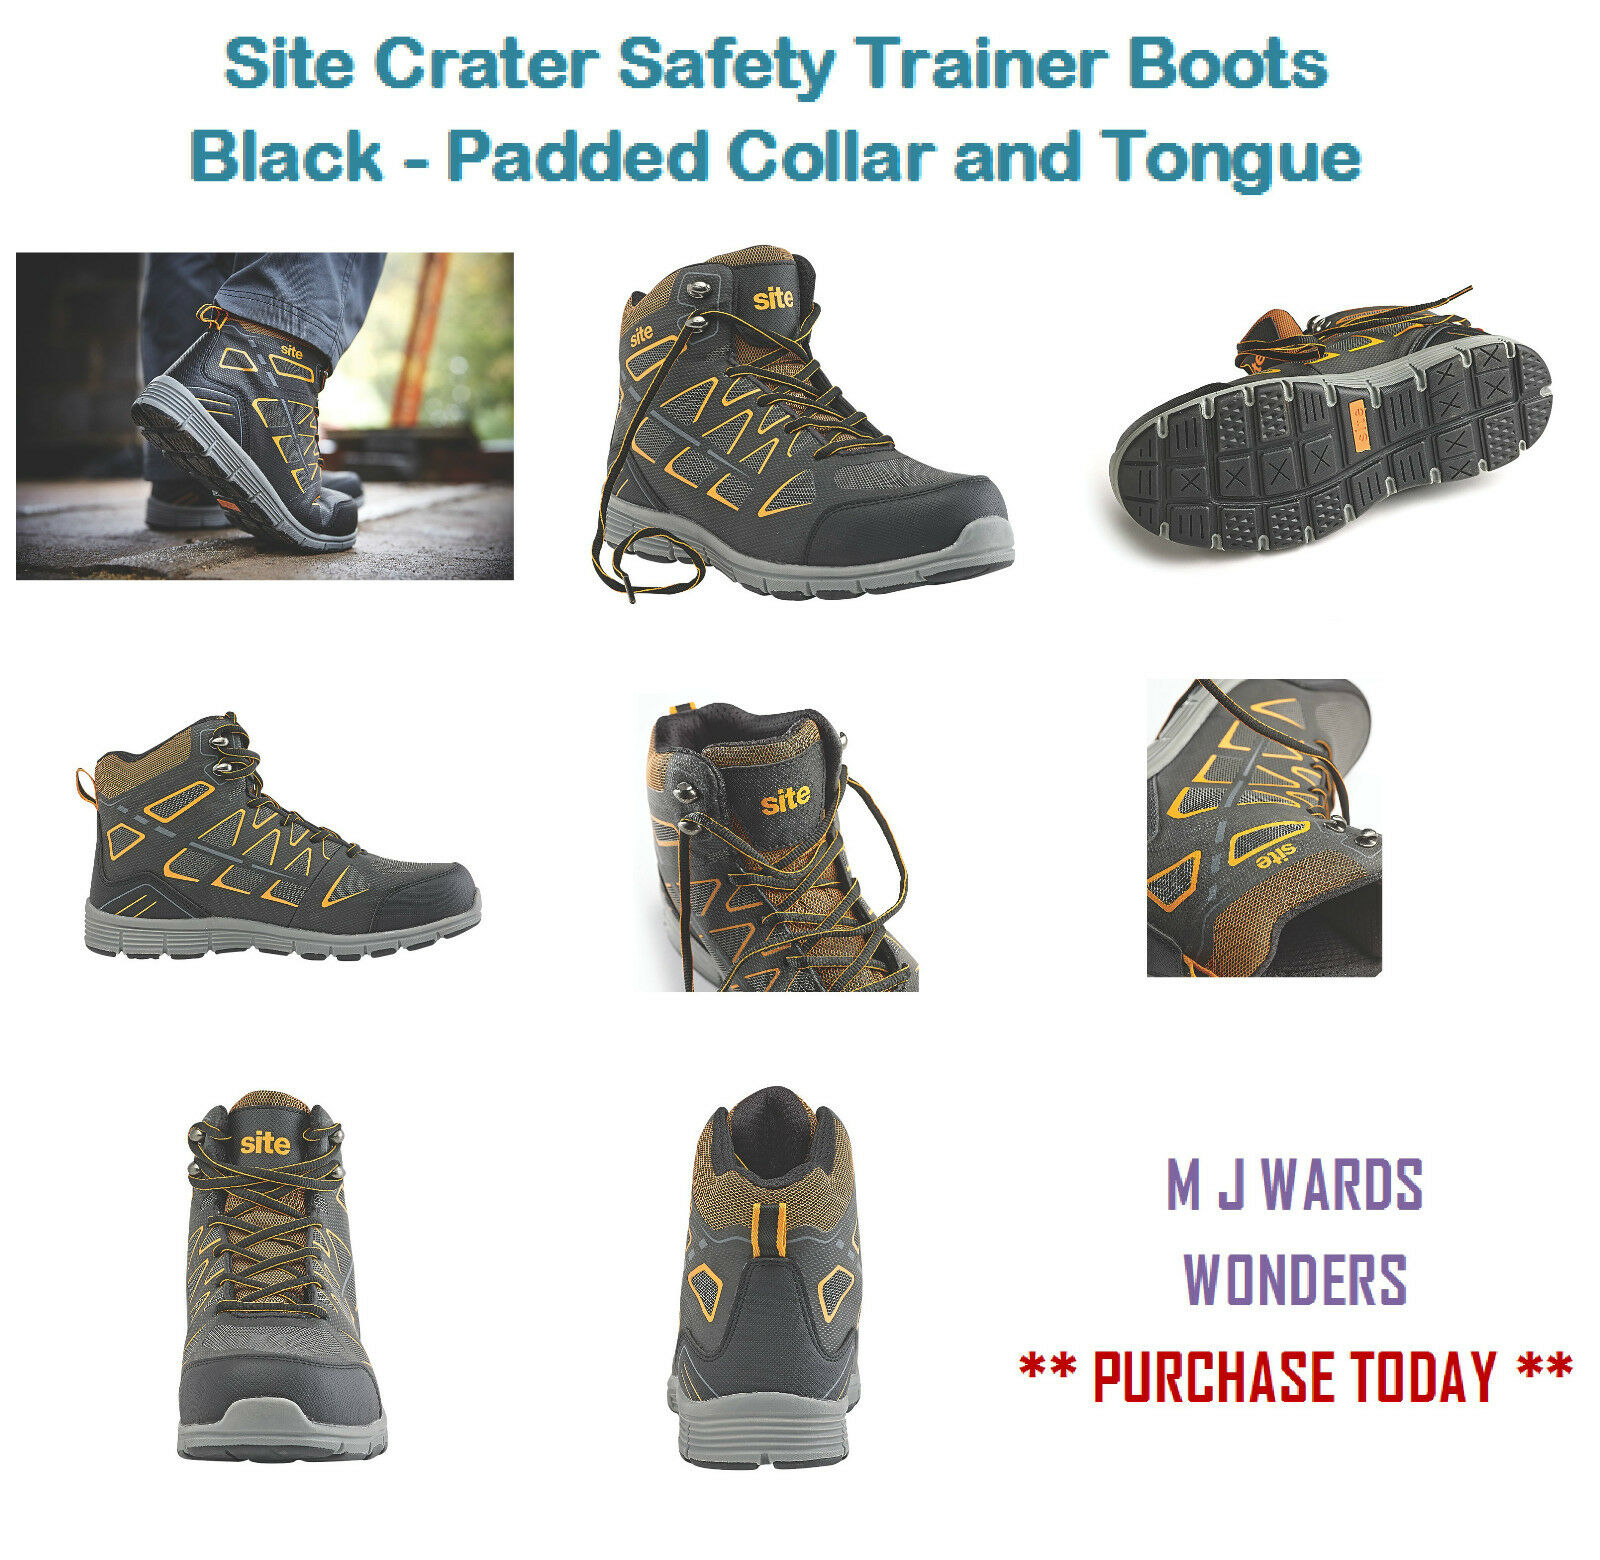 Site Crater Safety Trainer Boots Black - Padded Collar and Tongue